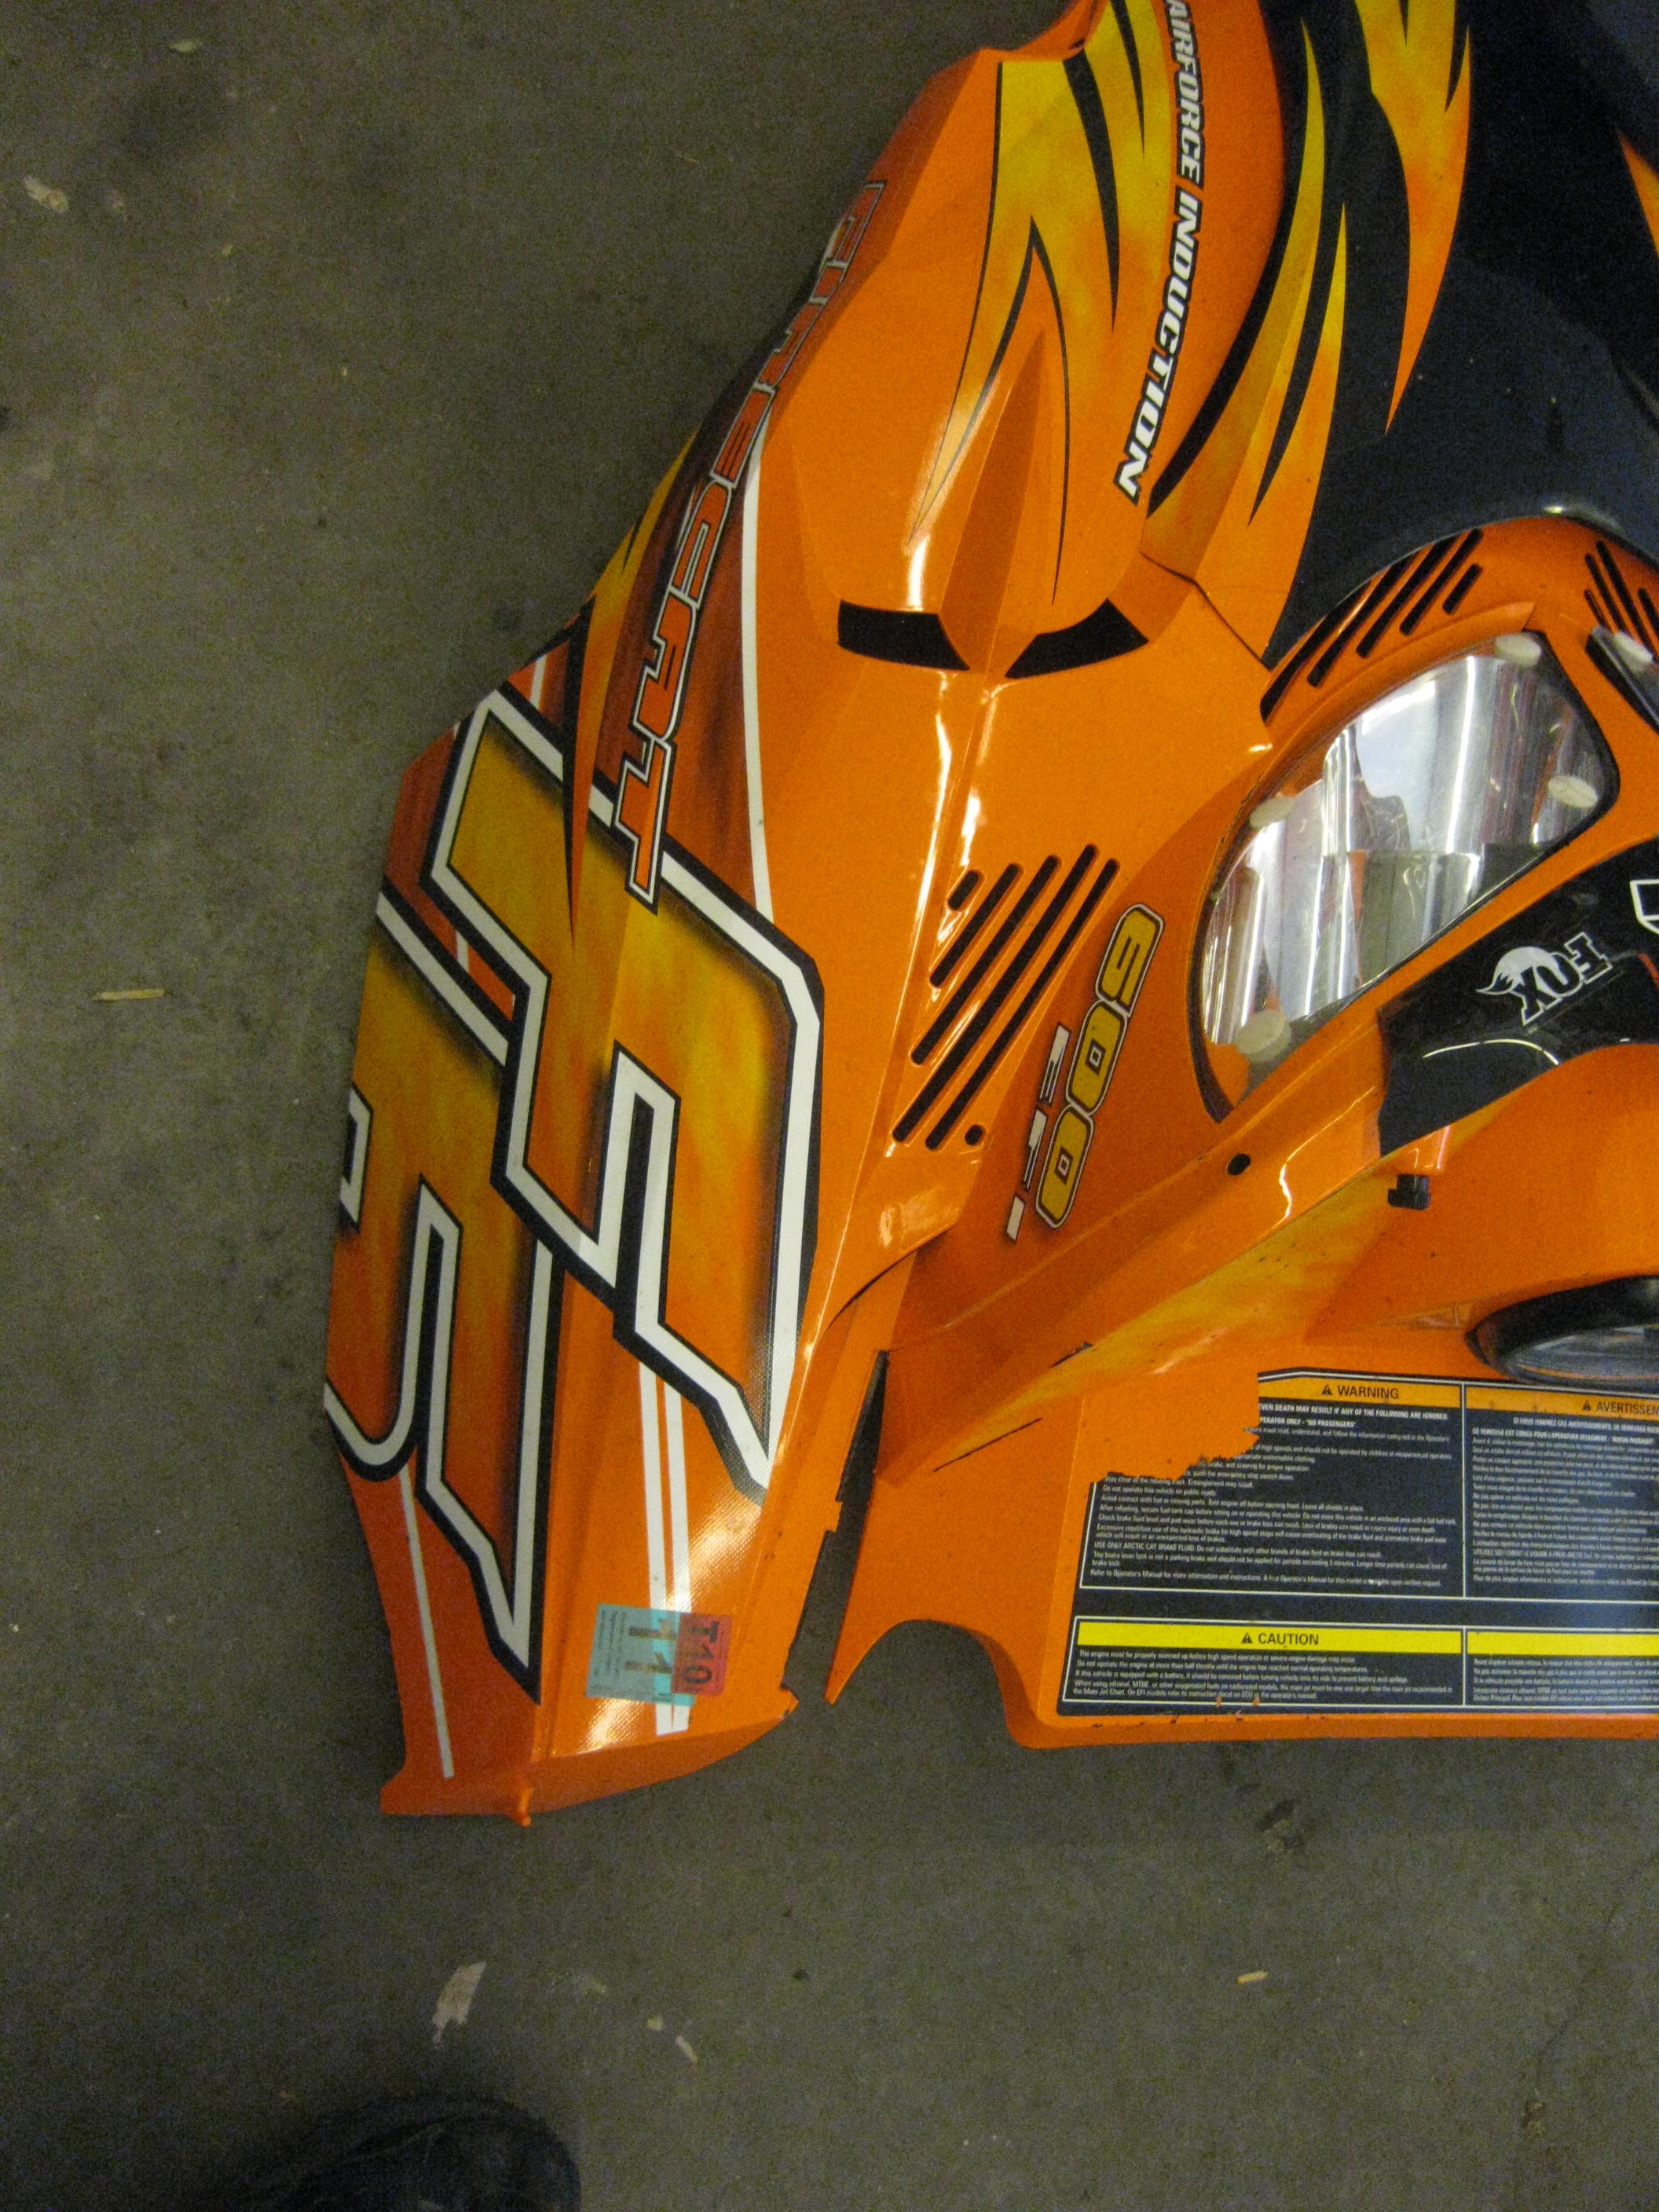 Parts available from 2006 Arctic Cat F6 Sno Pro orange